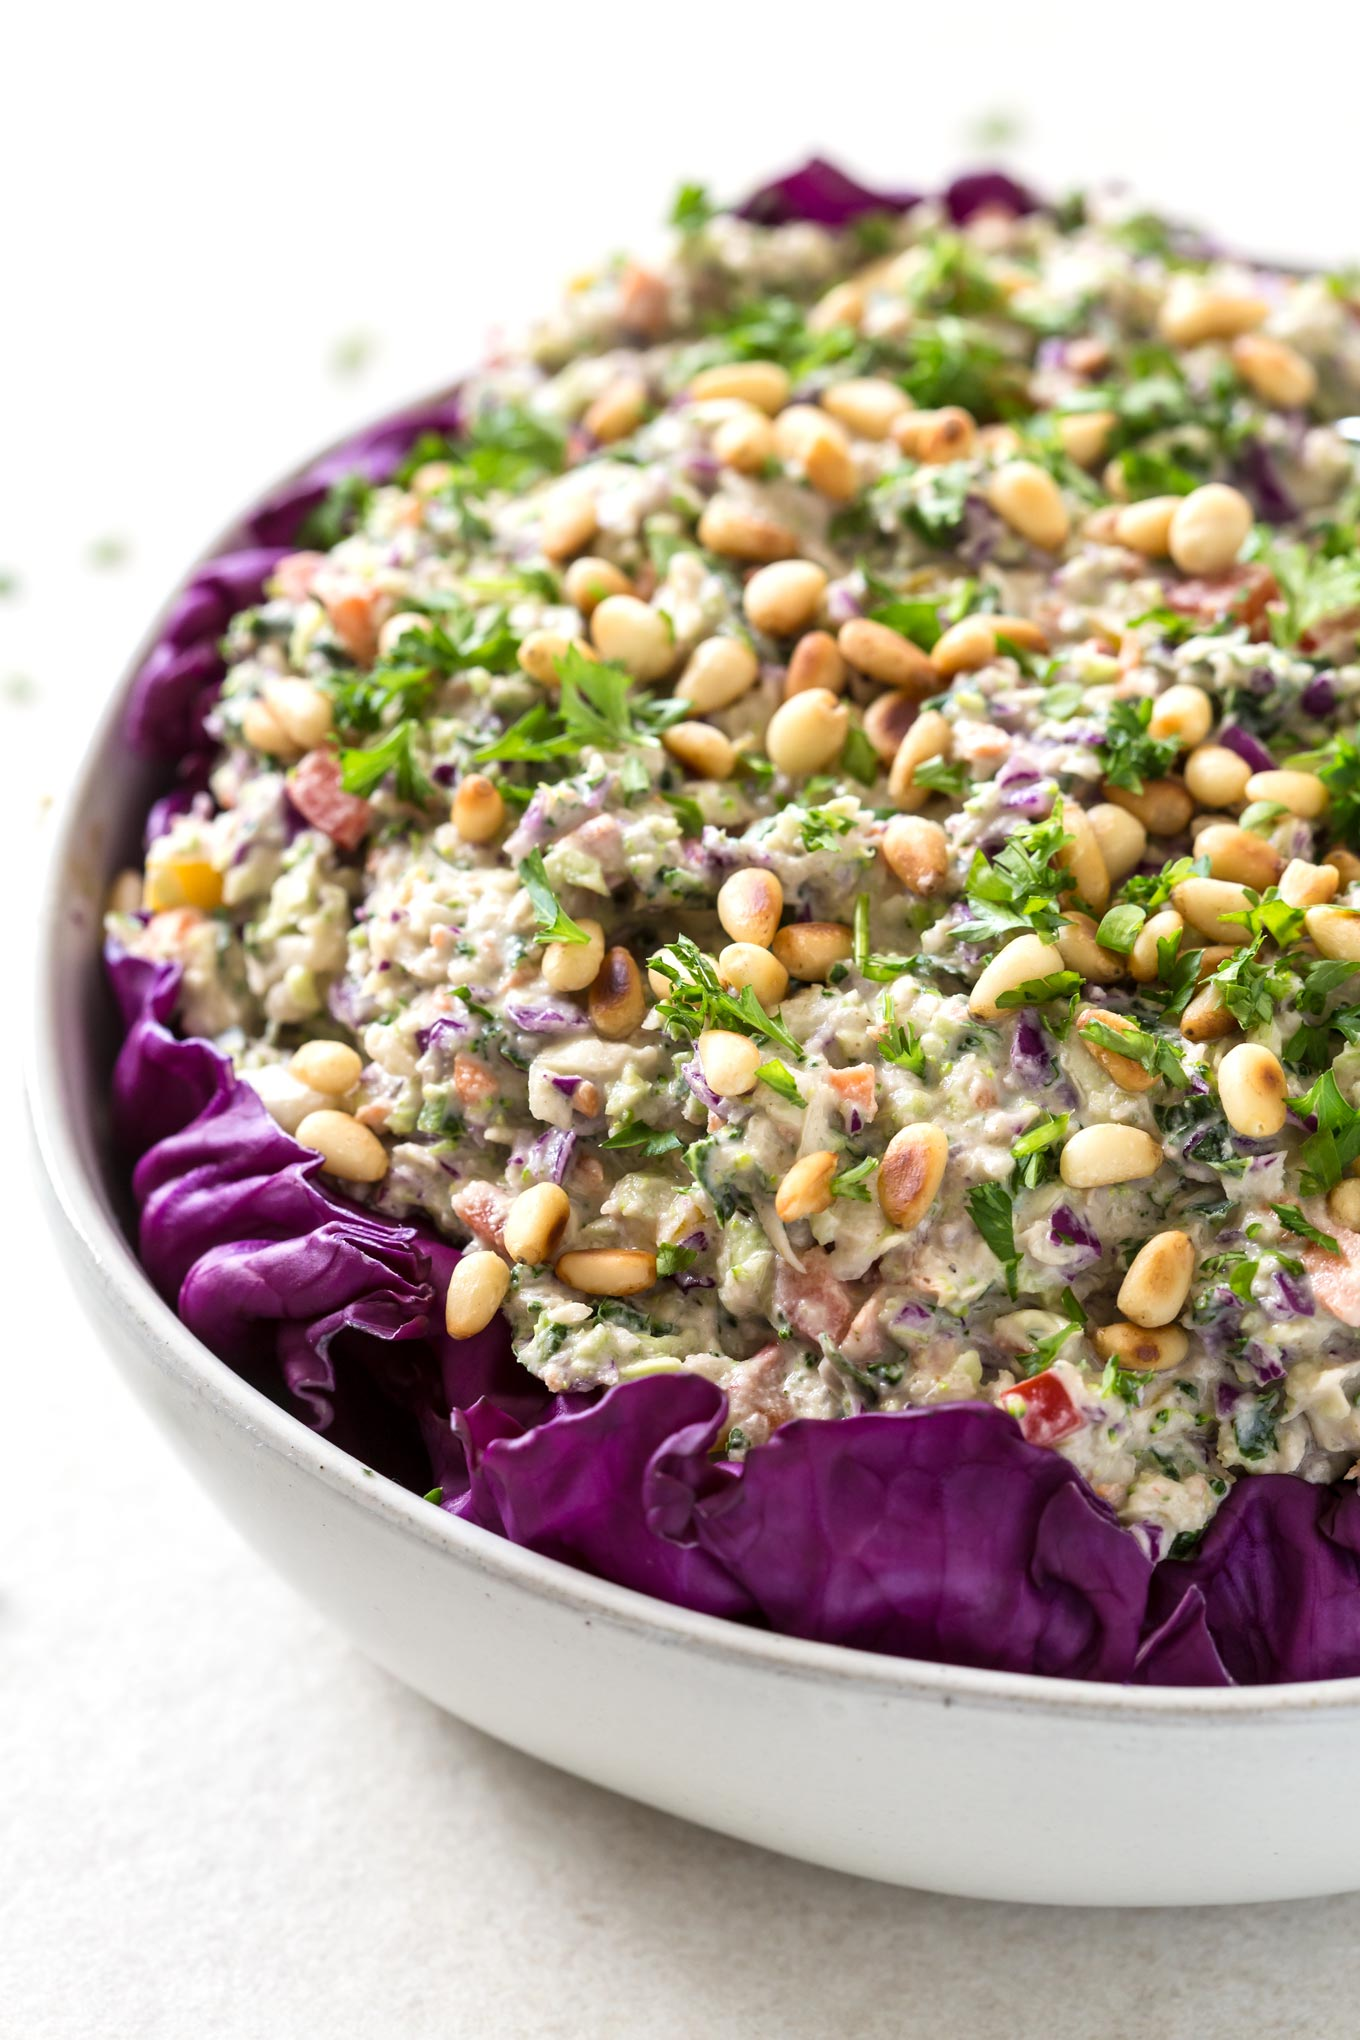 Rainbow Coleslaw Salad With Cashew Mayo close up